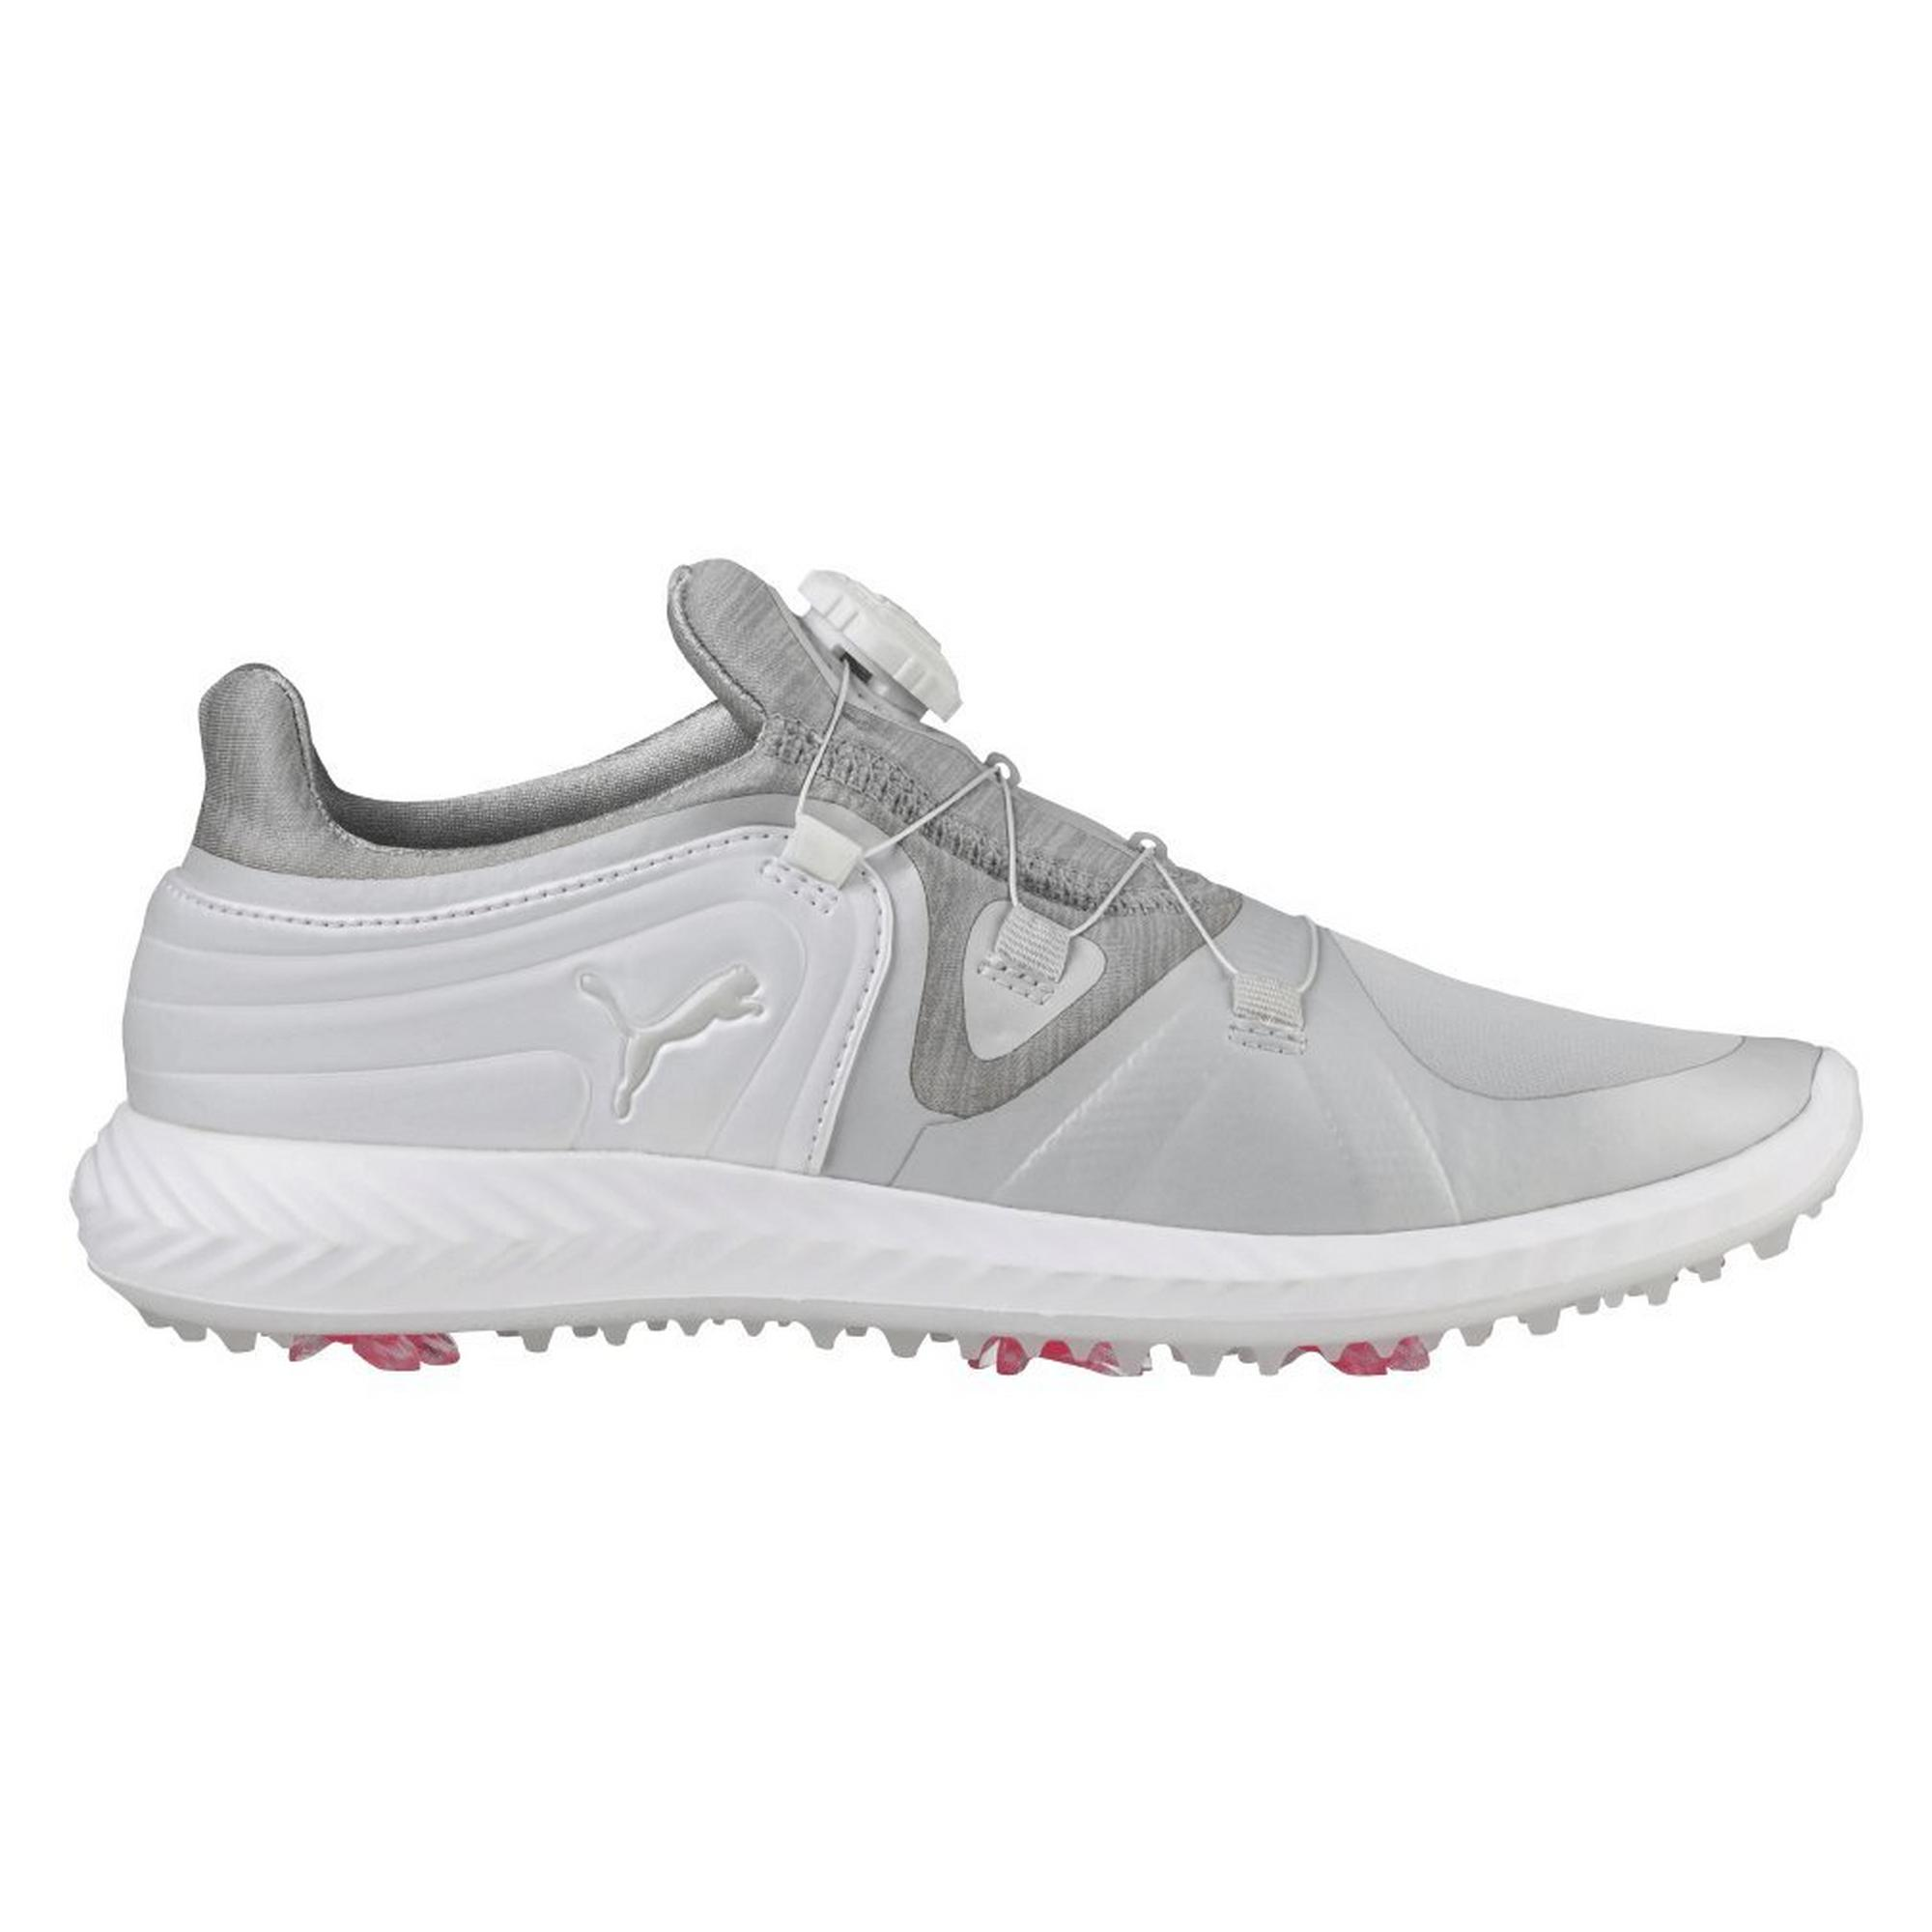 Women's Ignite Blaze Sport Disc Spiked Golf Shoe - WHT